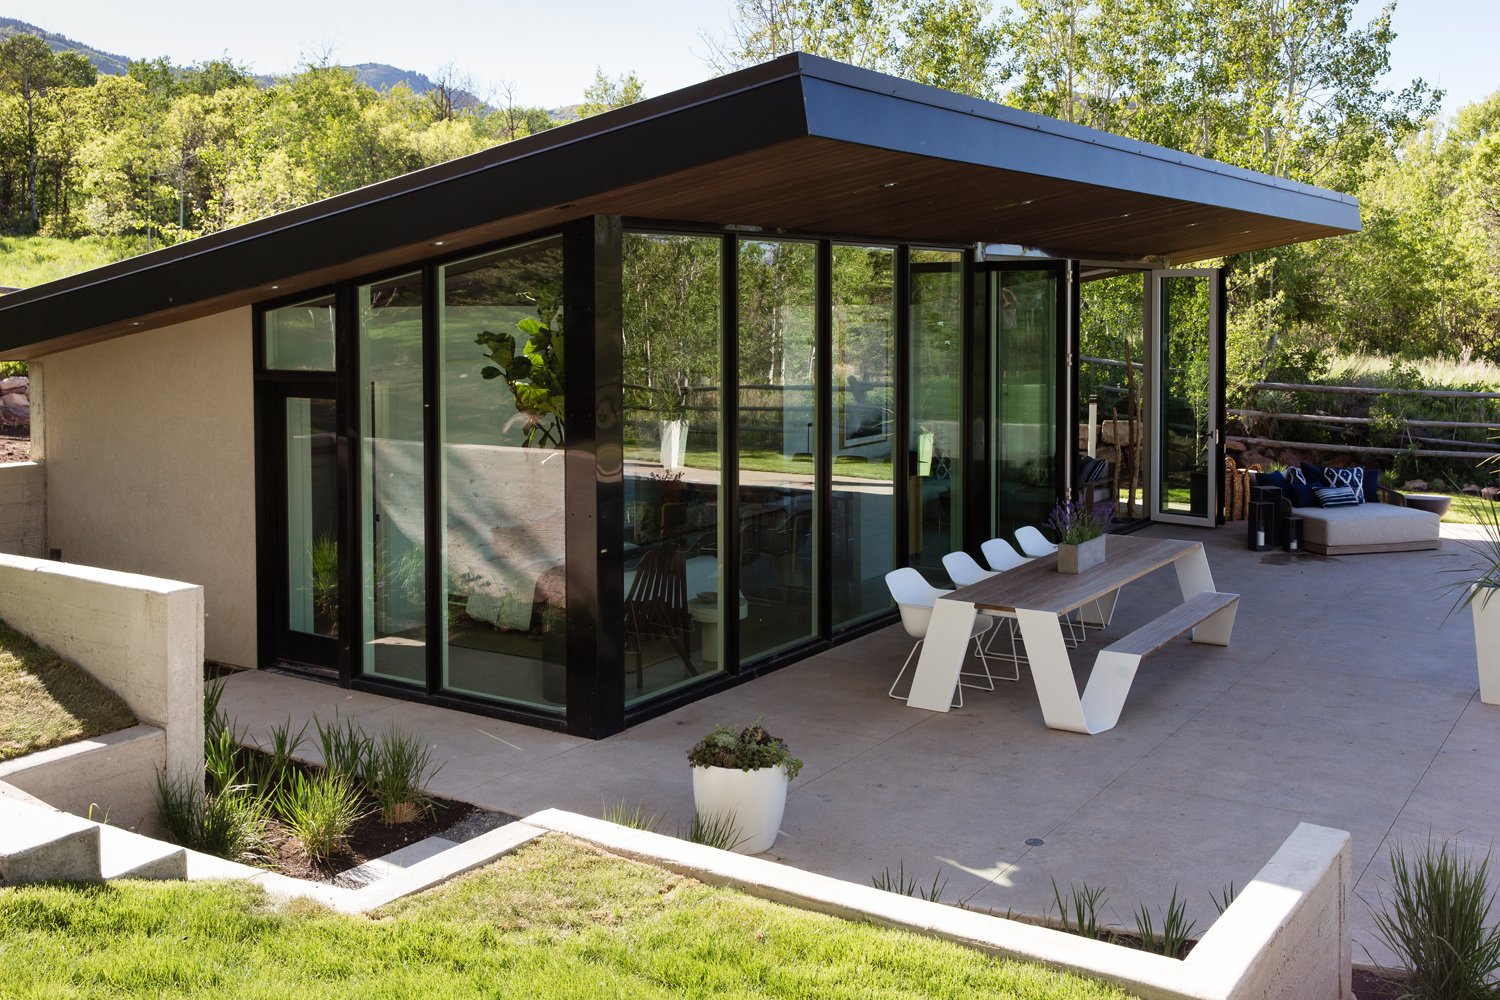 Exterior, Metal Roof Material, Glass Siding Material, Stucco Siding Material, Metal Siding Material, and Shed RoofLine  Photo 15 of 16 in This Can-Do Pool House Cleverly Goes From Private to Party Mode from Modern Mountain Pool House